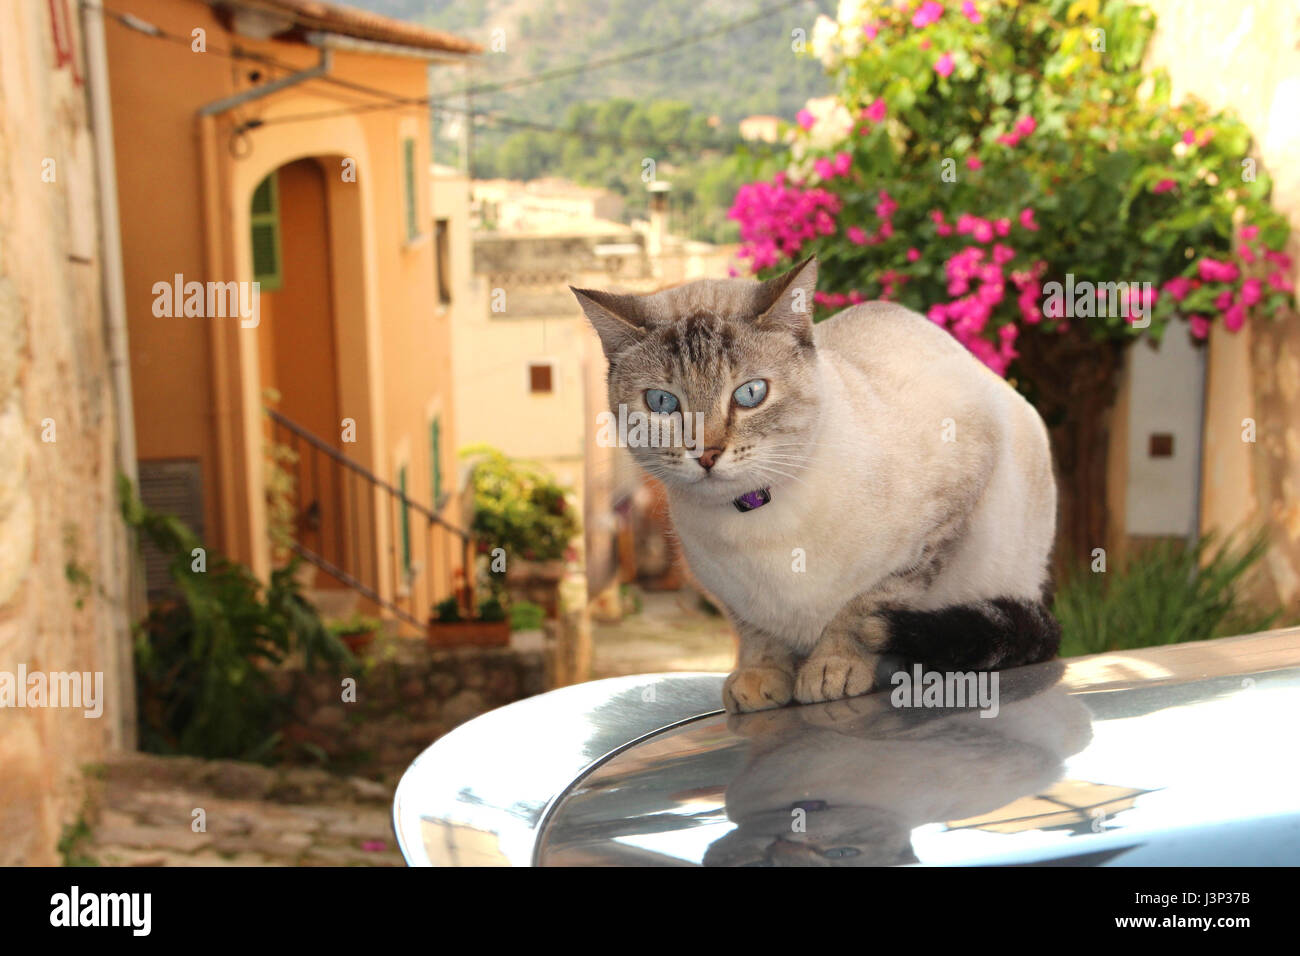 domestic cat, tabby point, siamese mix, lying on the roof of a car in front of an old romantic village - Stock Image